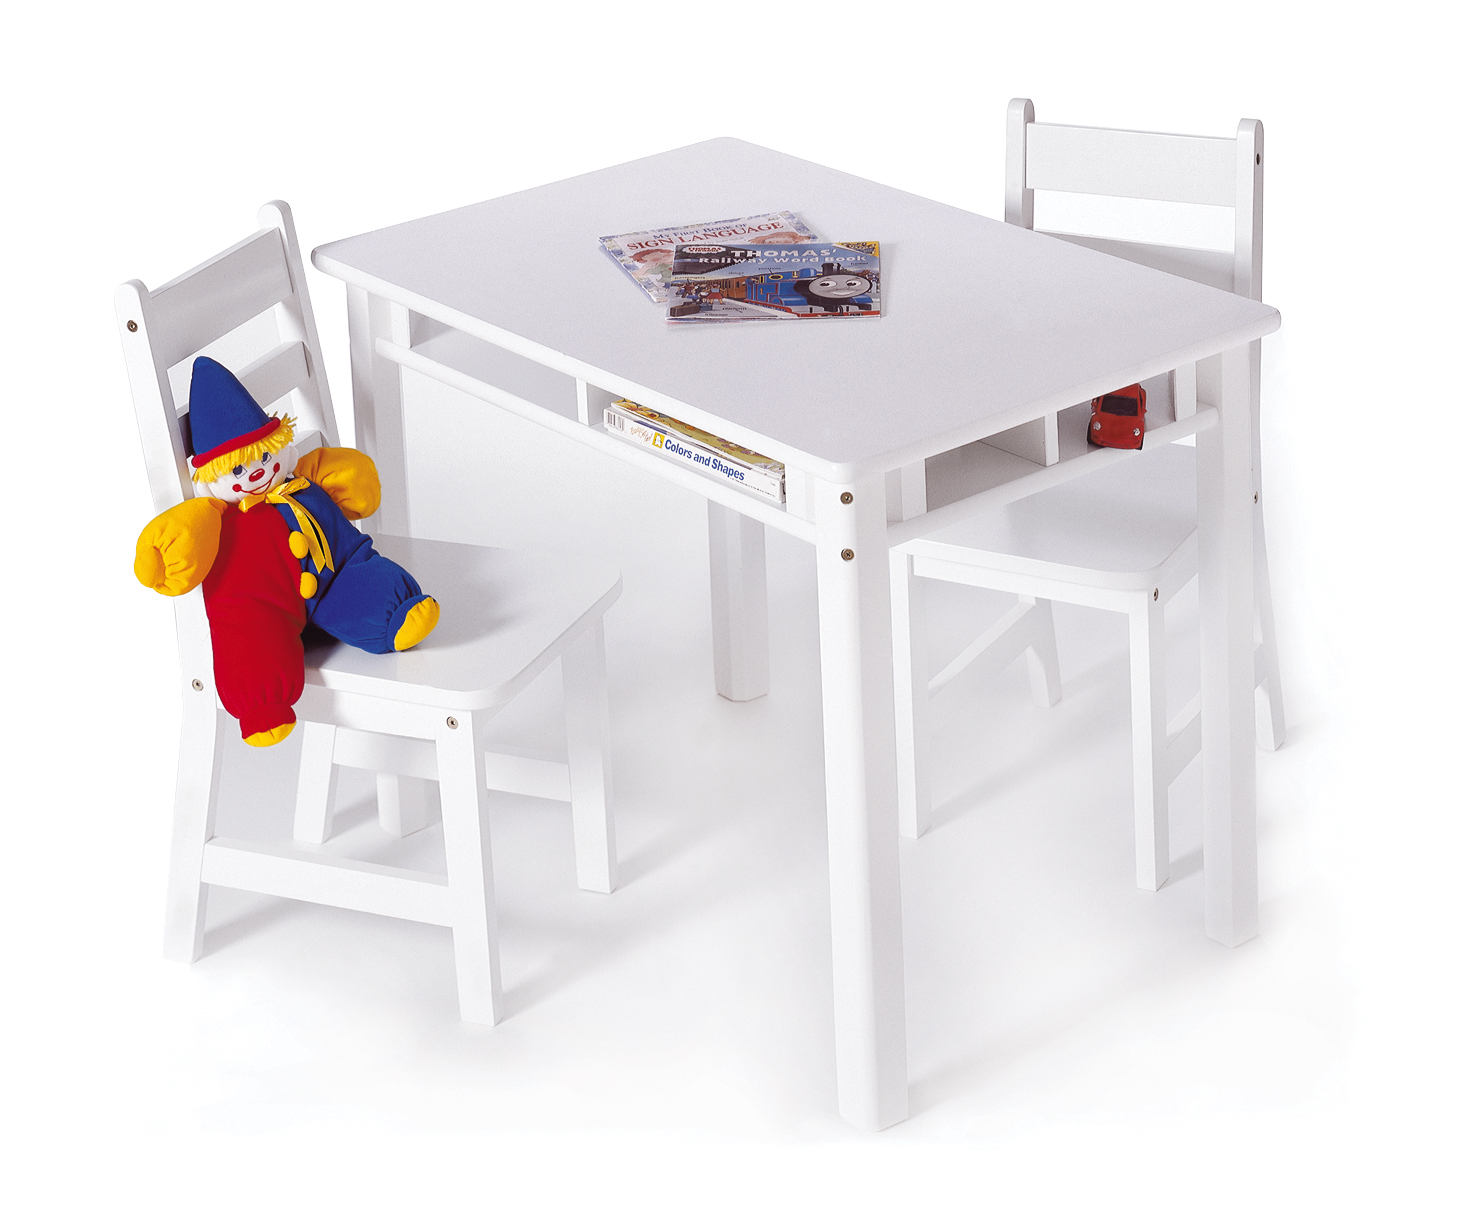 Child S Rectangular Table With Shelves 2 Chairs White Lipper International Chair Sets